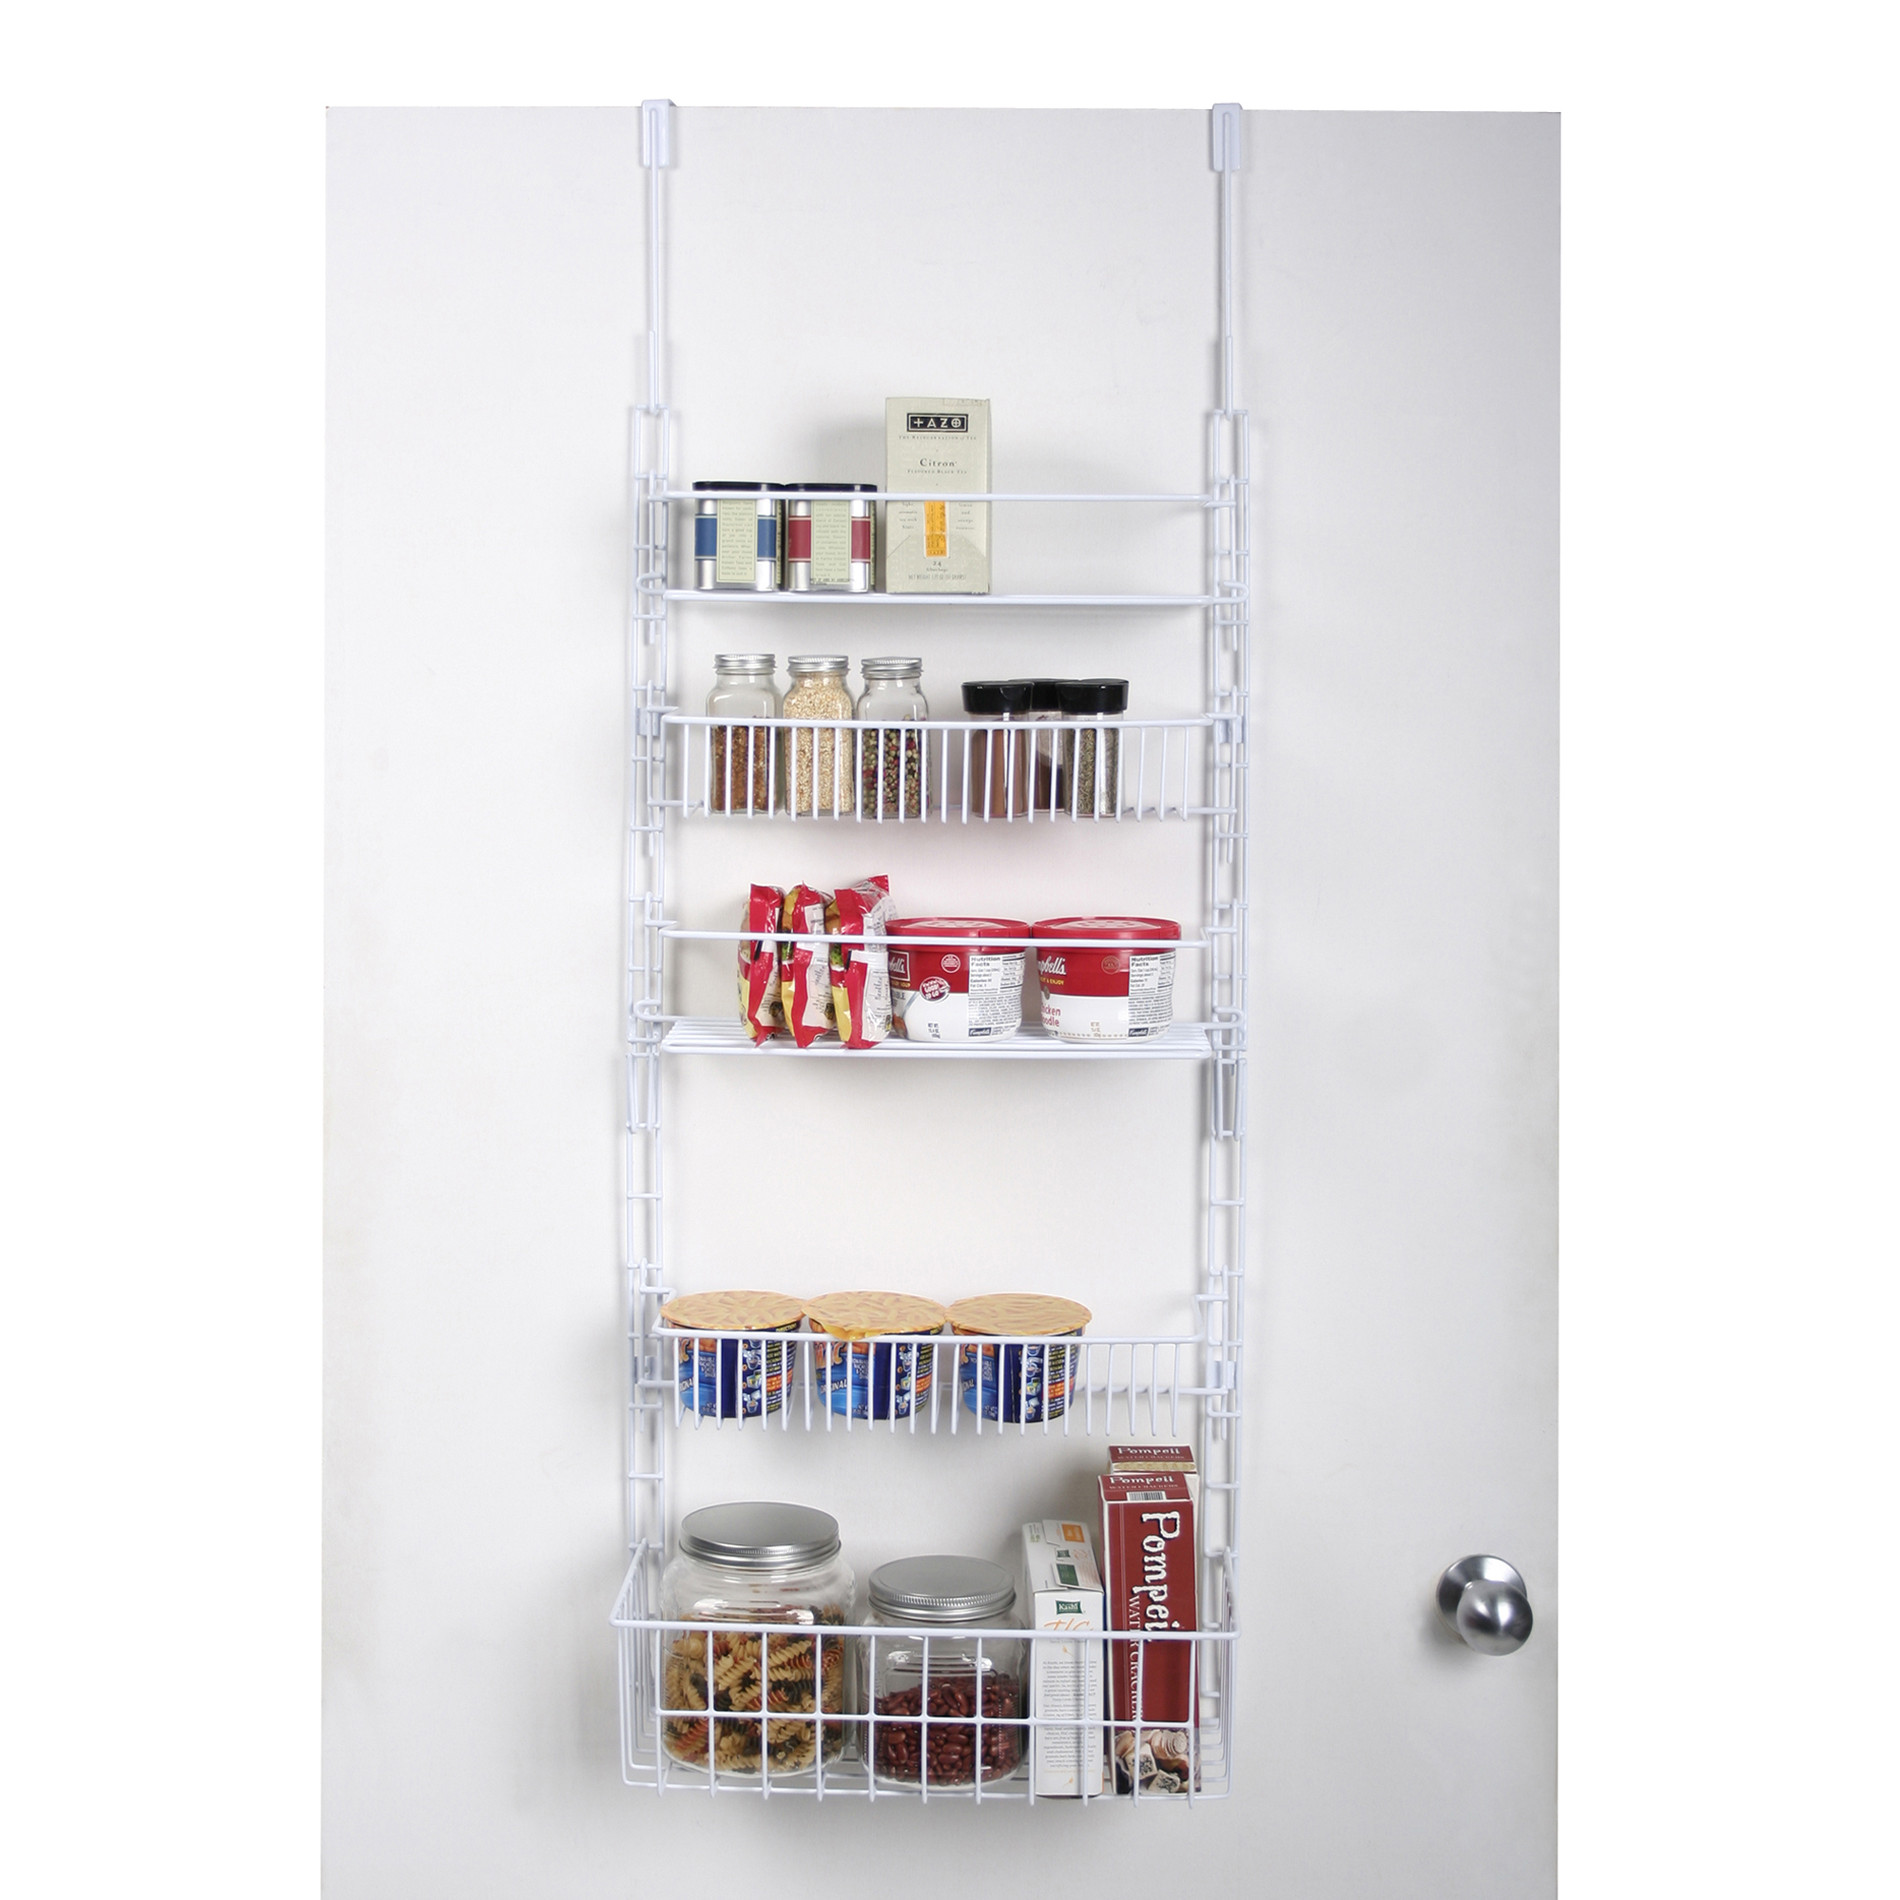 Best ideas about Over The Door Pantry Organizer . Save or Pin Essential Home Over The Door Pantry Organizer White Now.